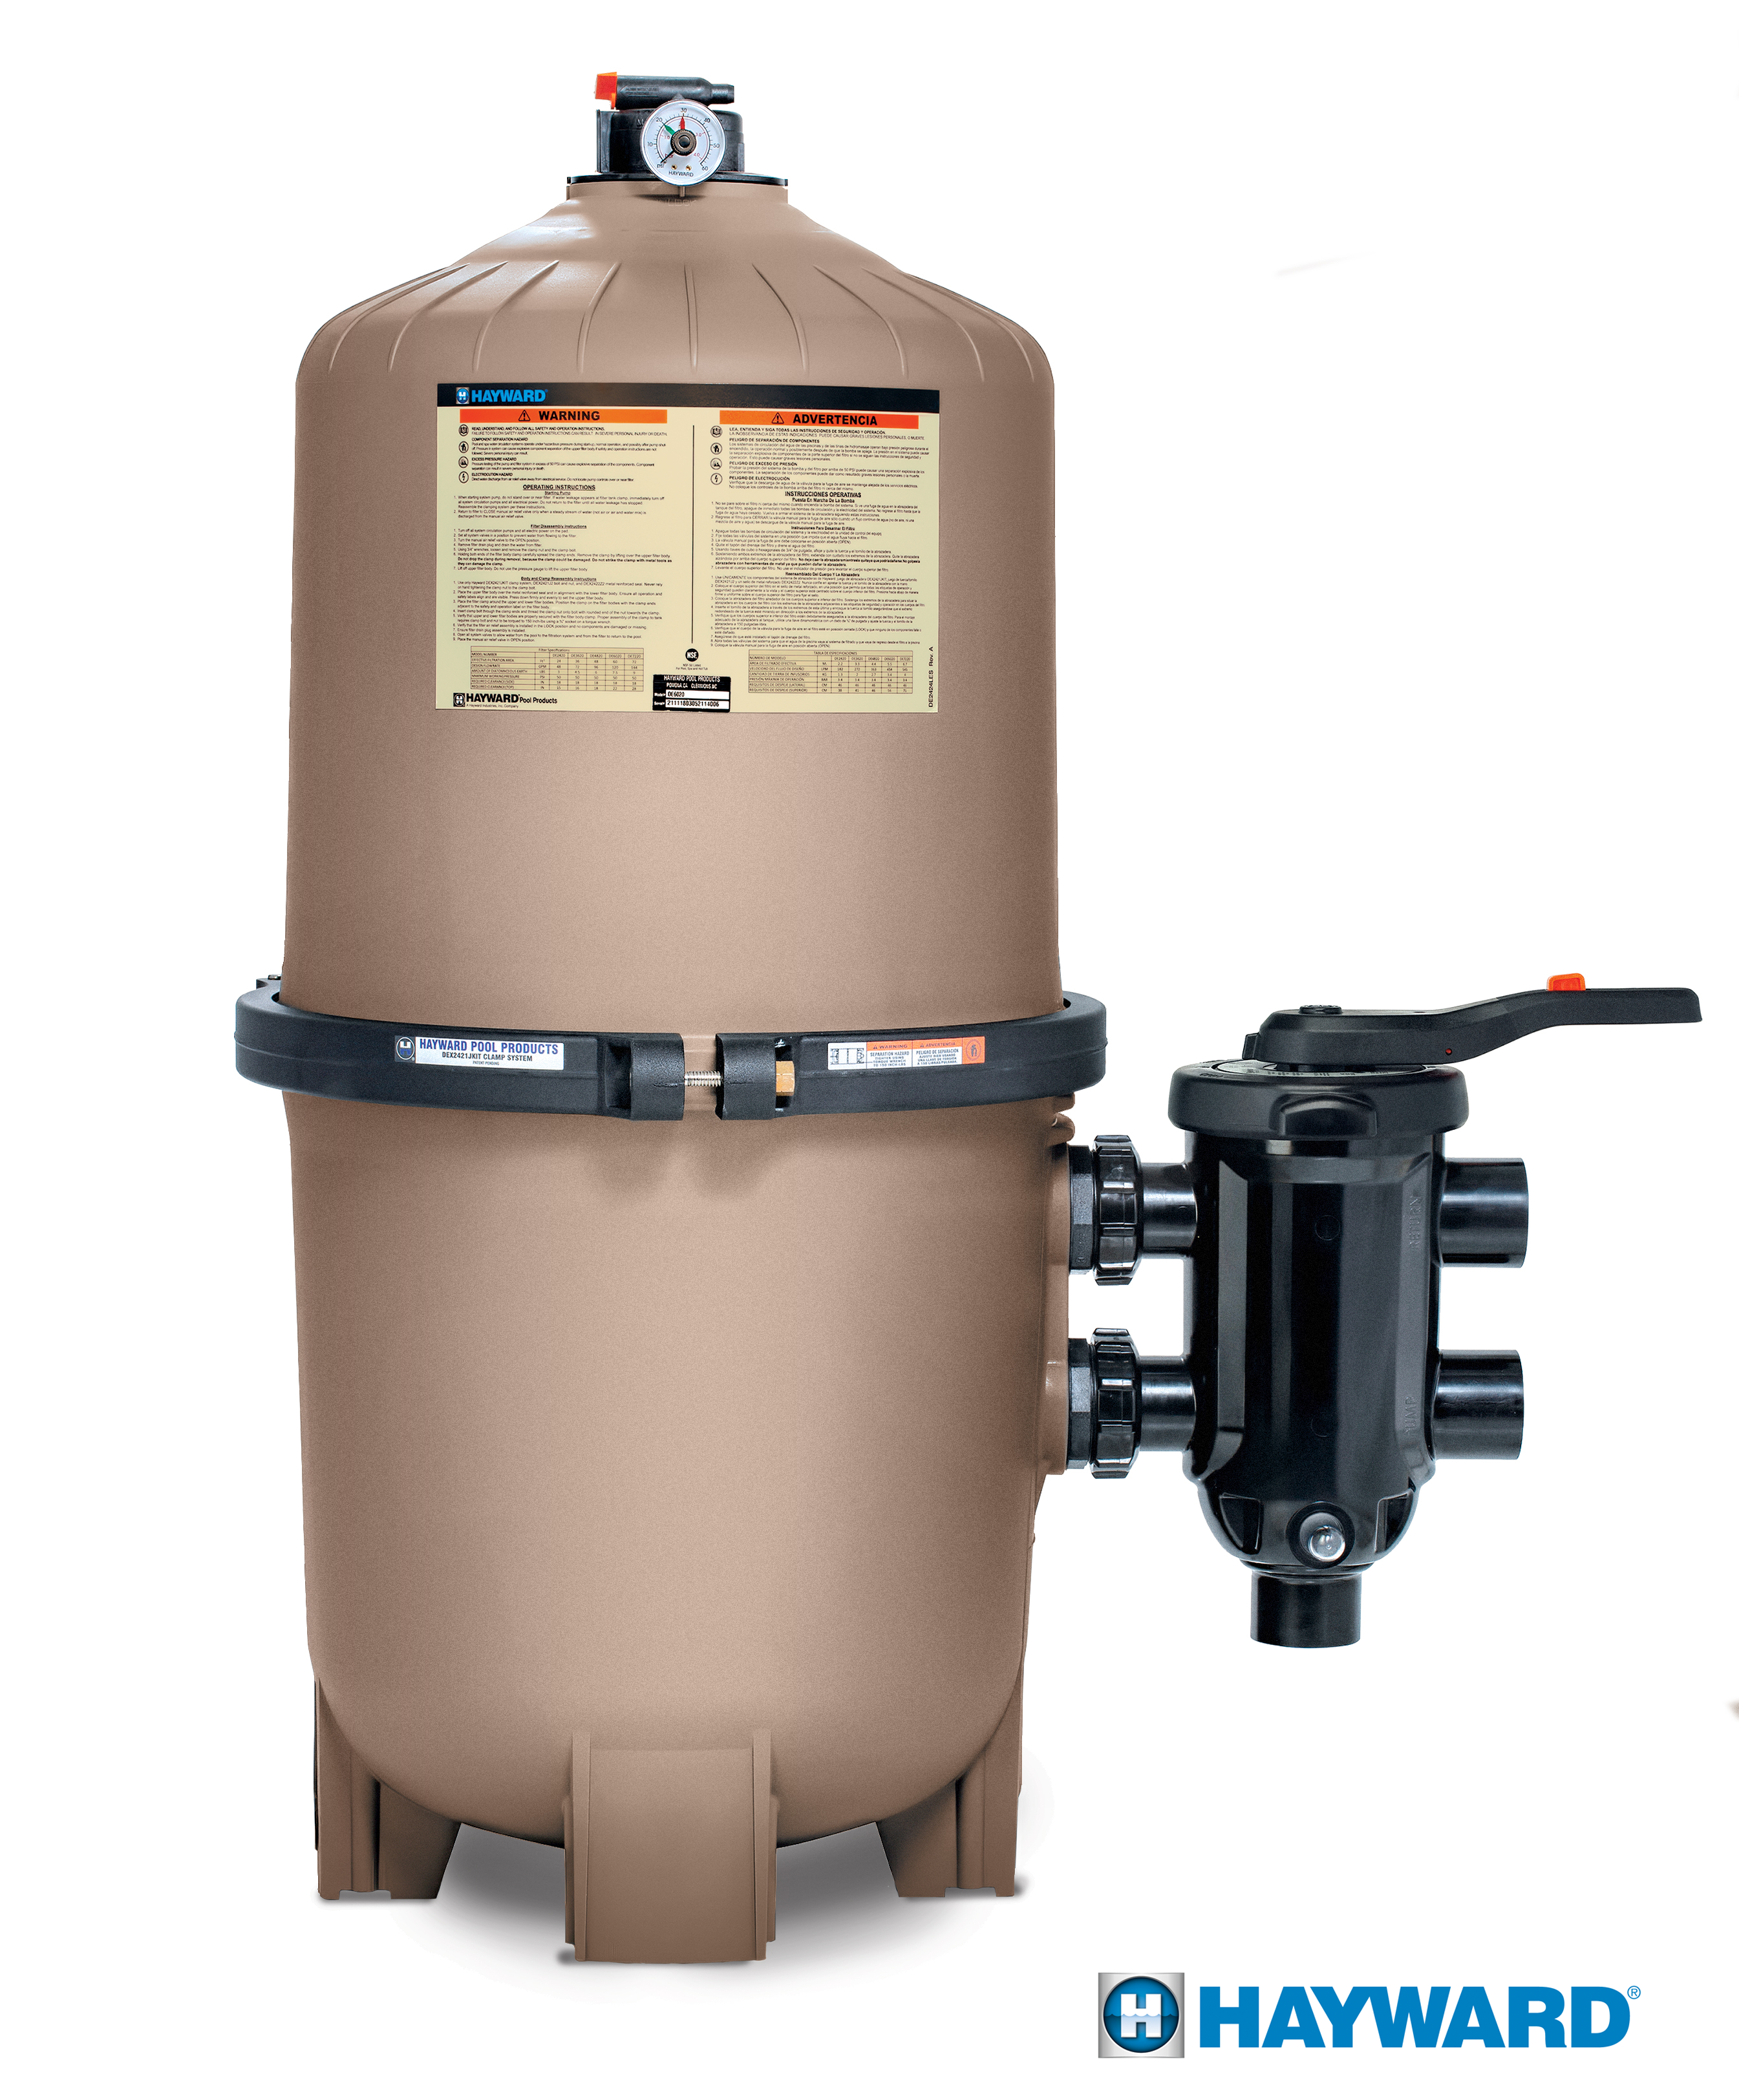 Our ProGrid DE filter is made to last and offers superior